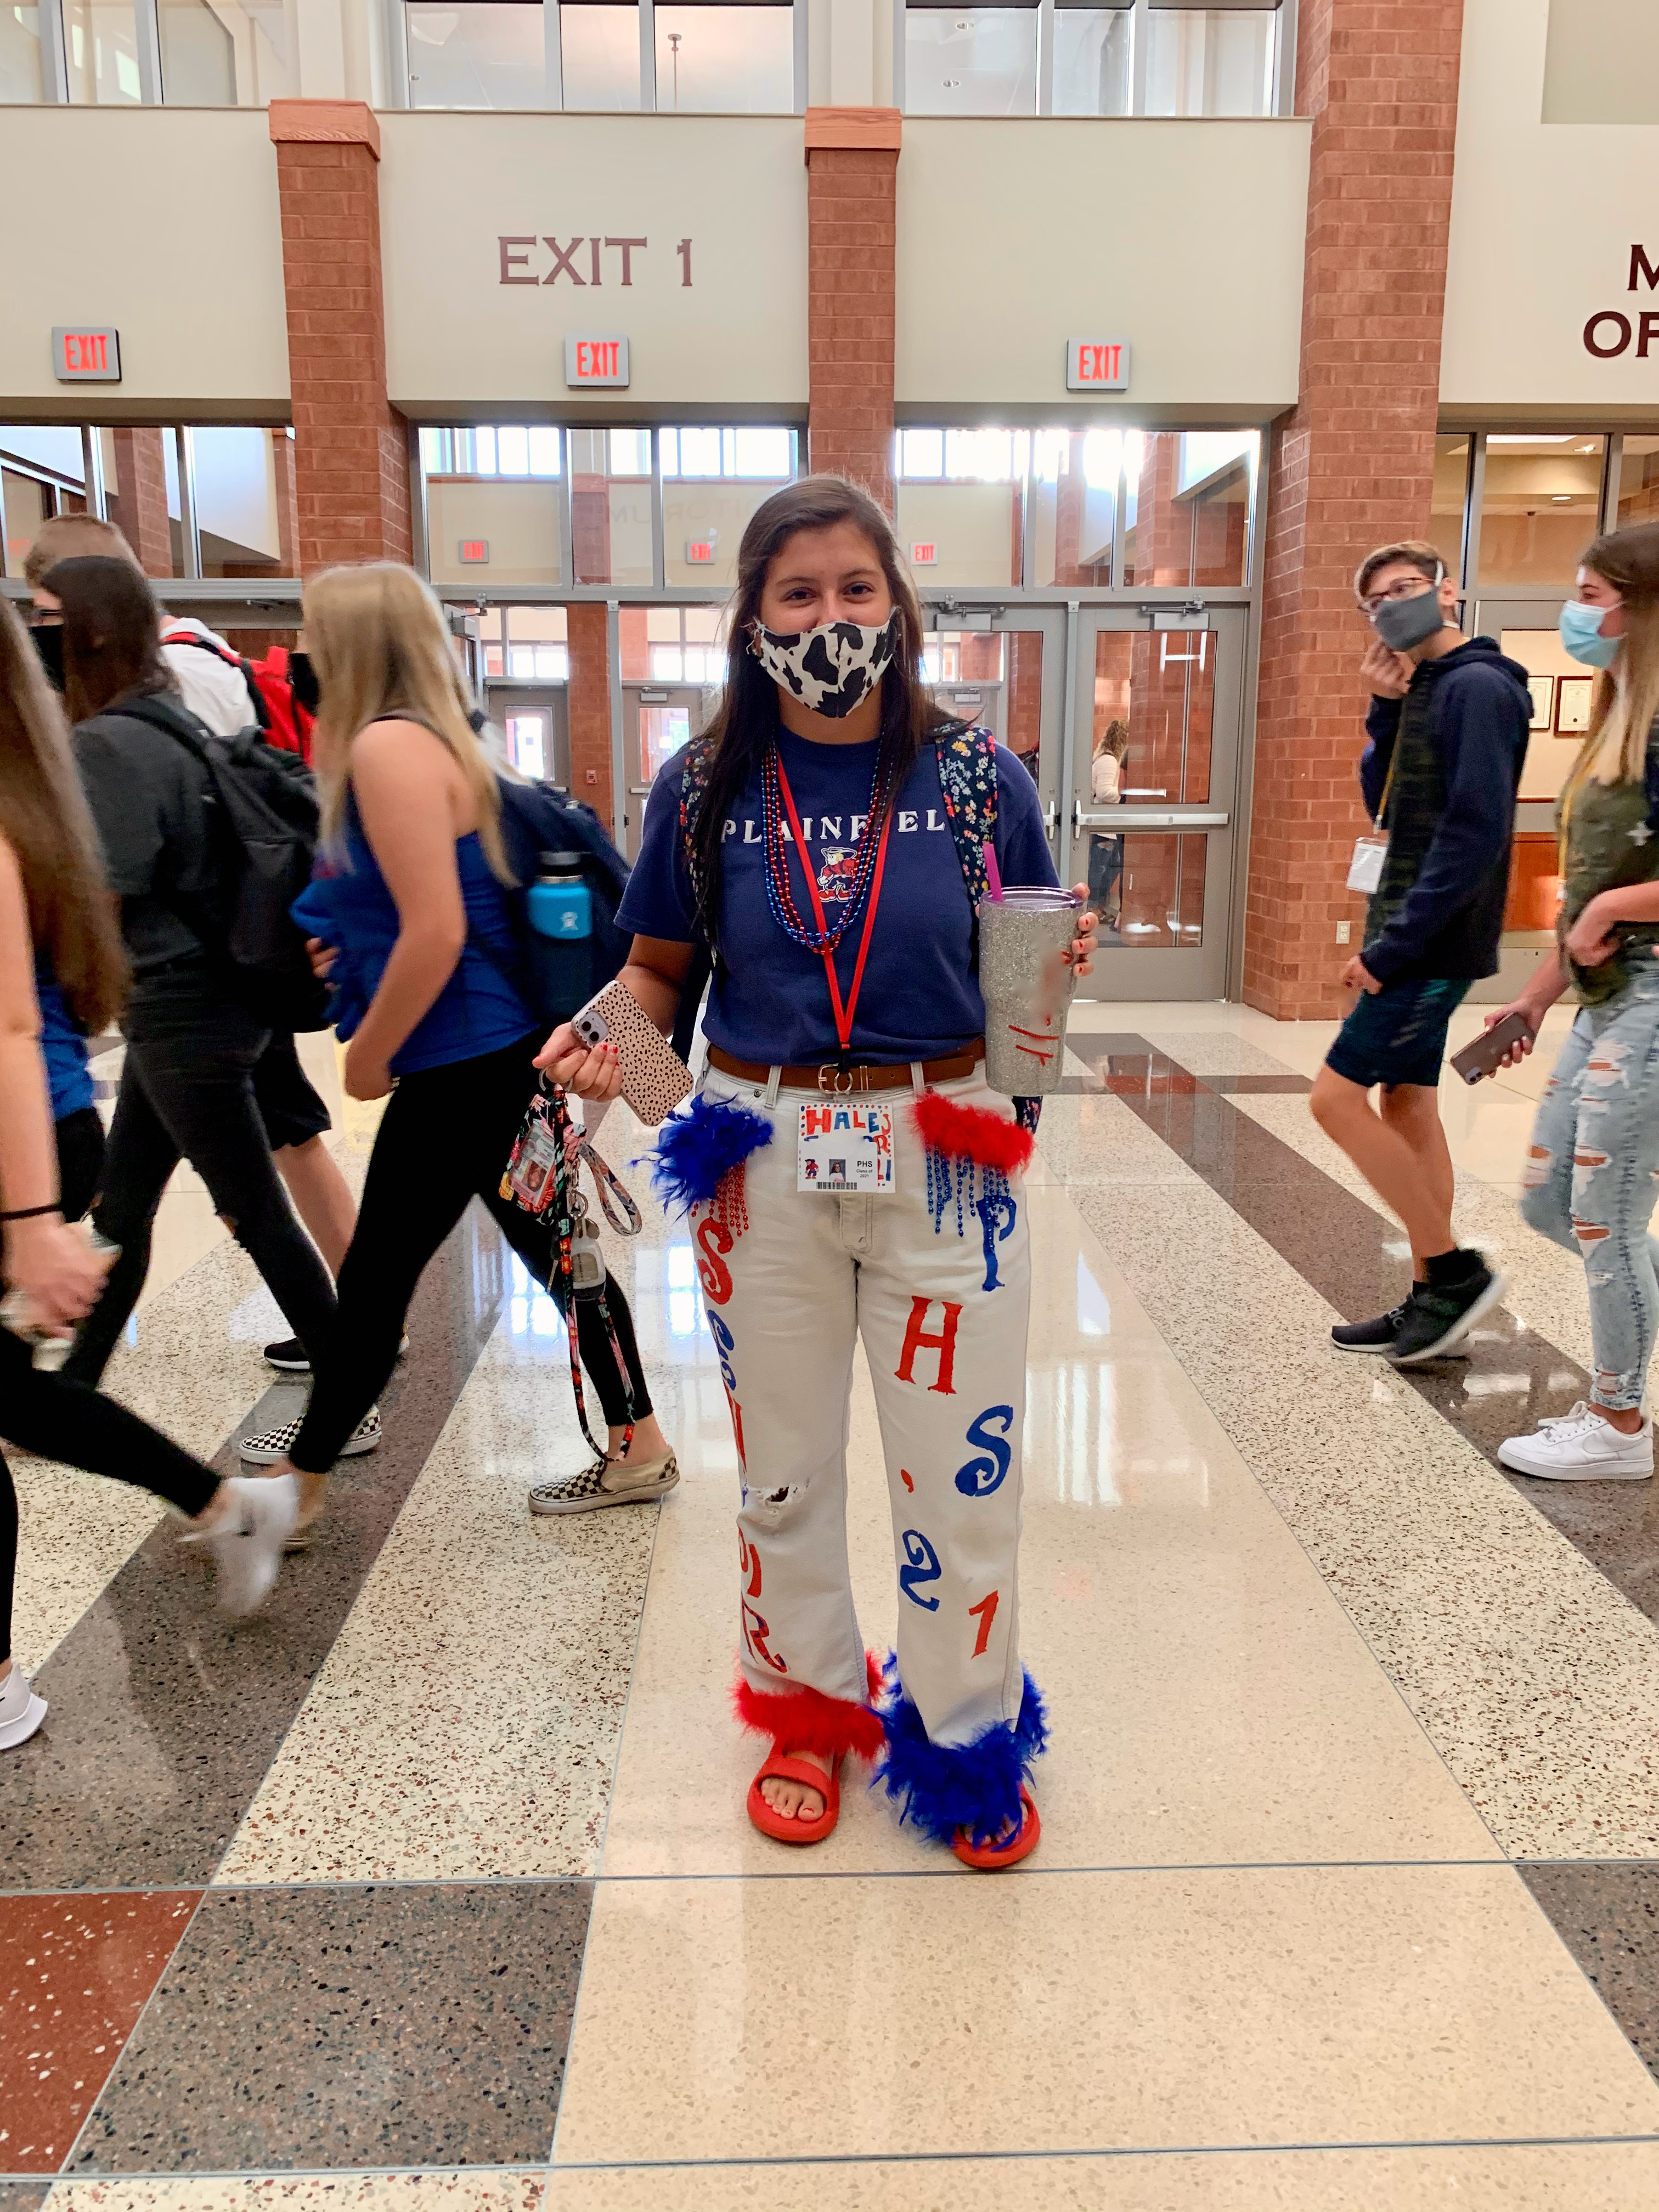 Even during a global pandemic, school spirit is in full swing at PHS!